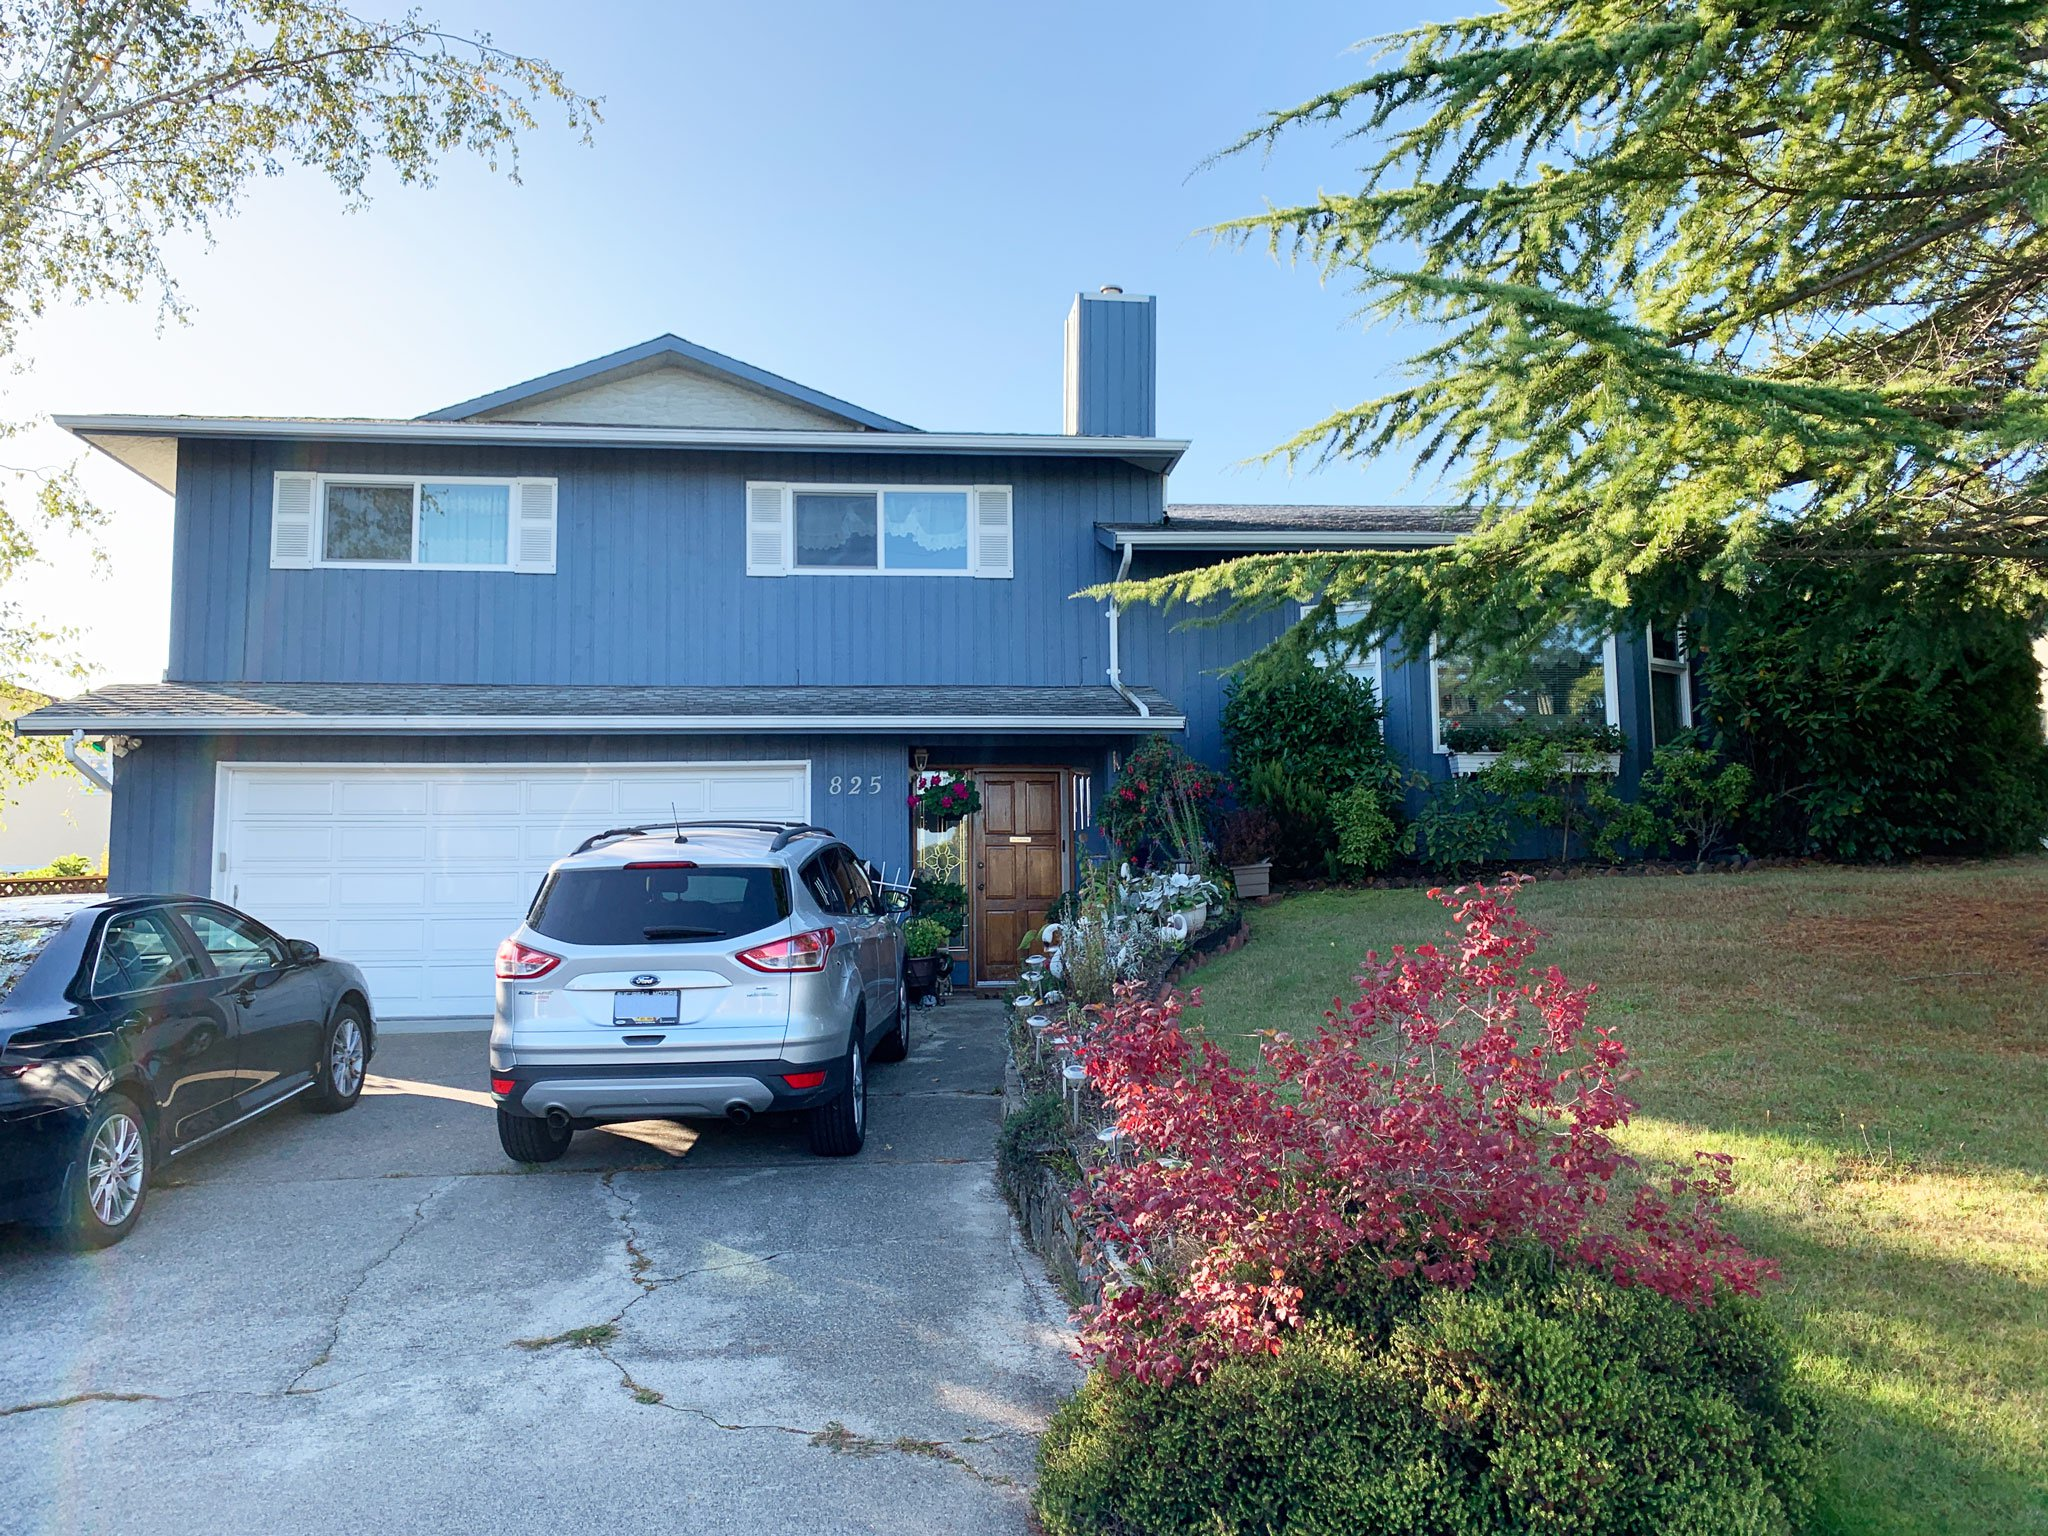 Main Photo: 825 Cameo Street in VICTORIA: SE High Quadra Single Family Detached for sale (Saanich East)  : MLS®# 414958